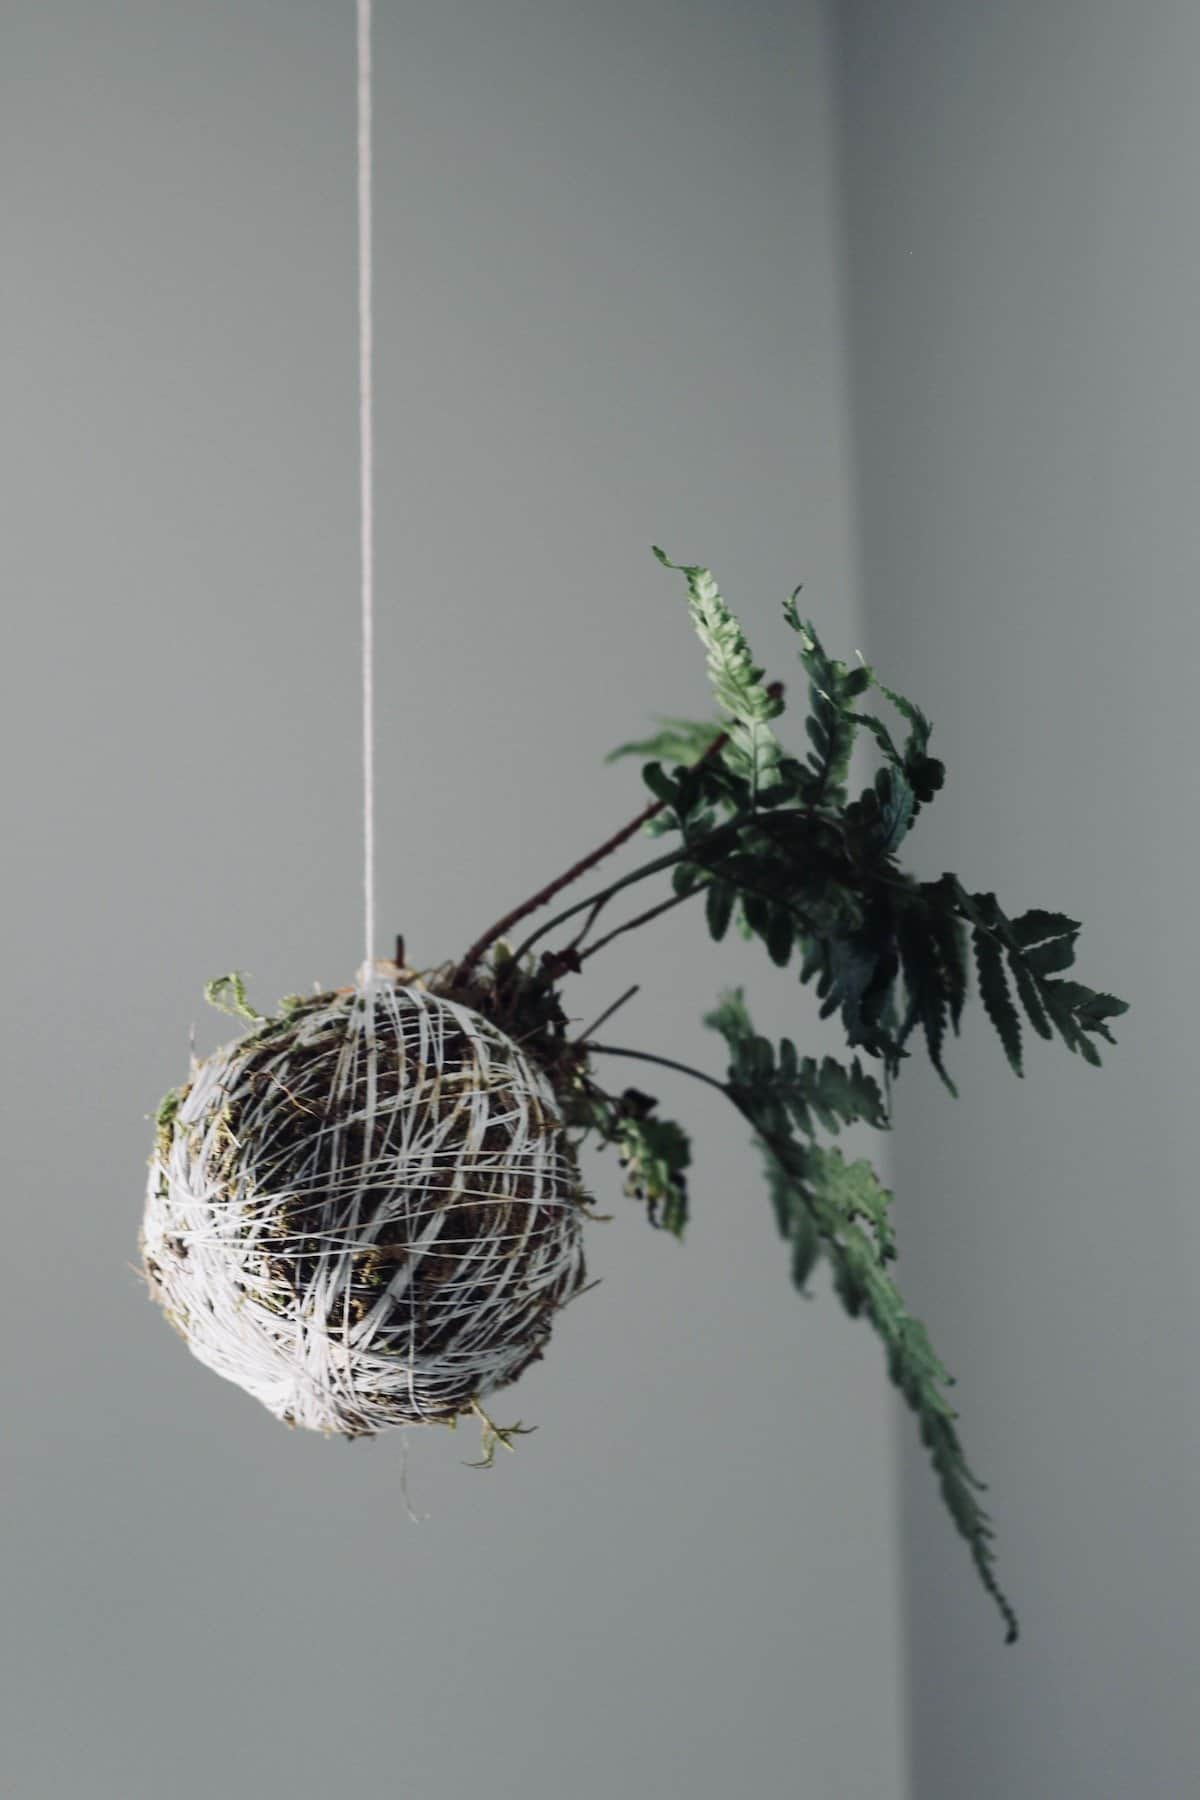 green fern planted in moss ball hanging from white string against a white background